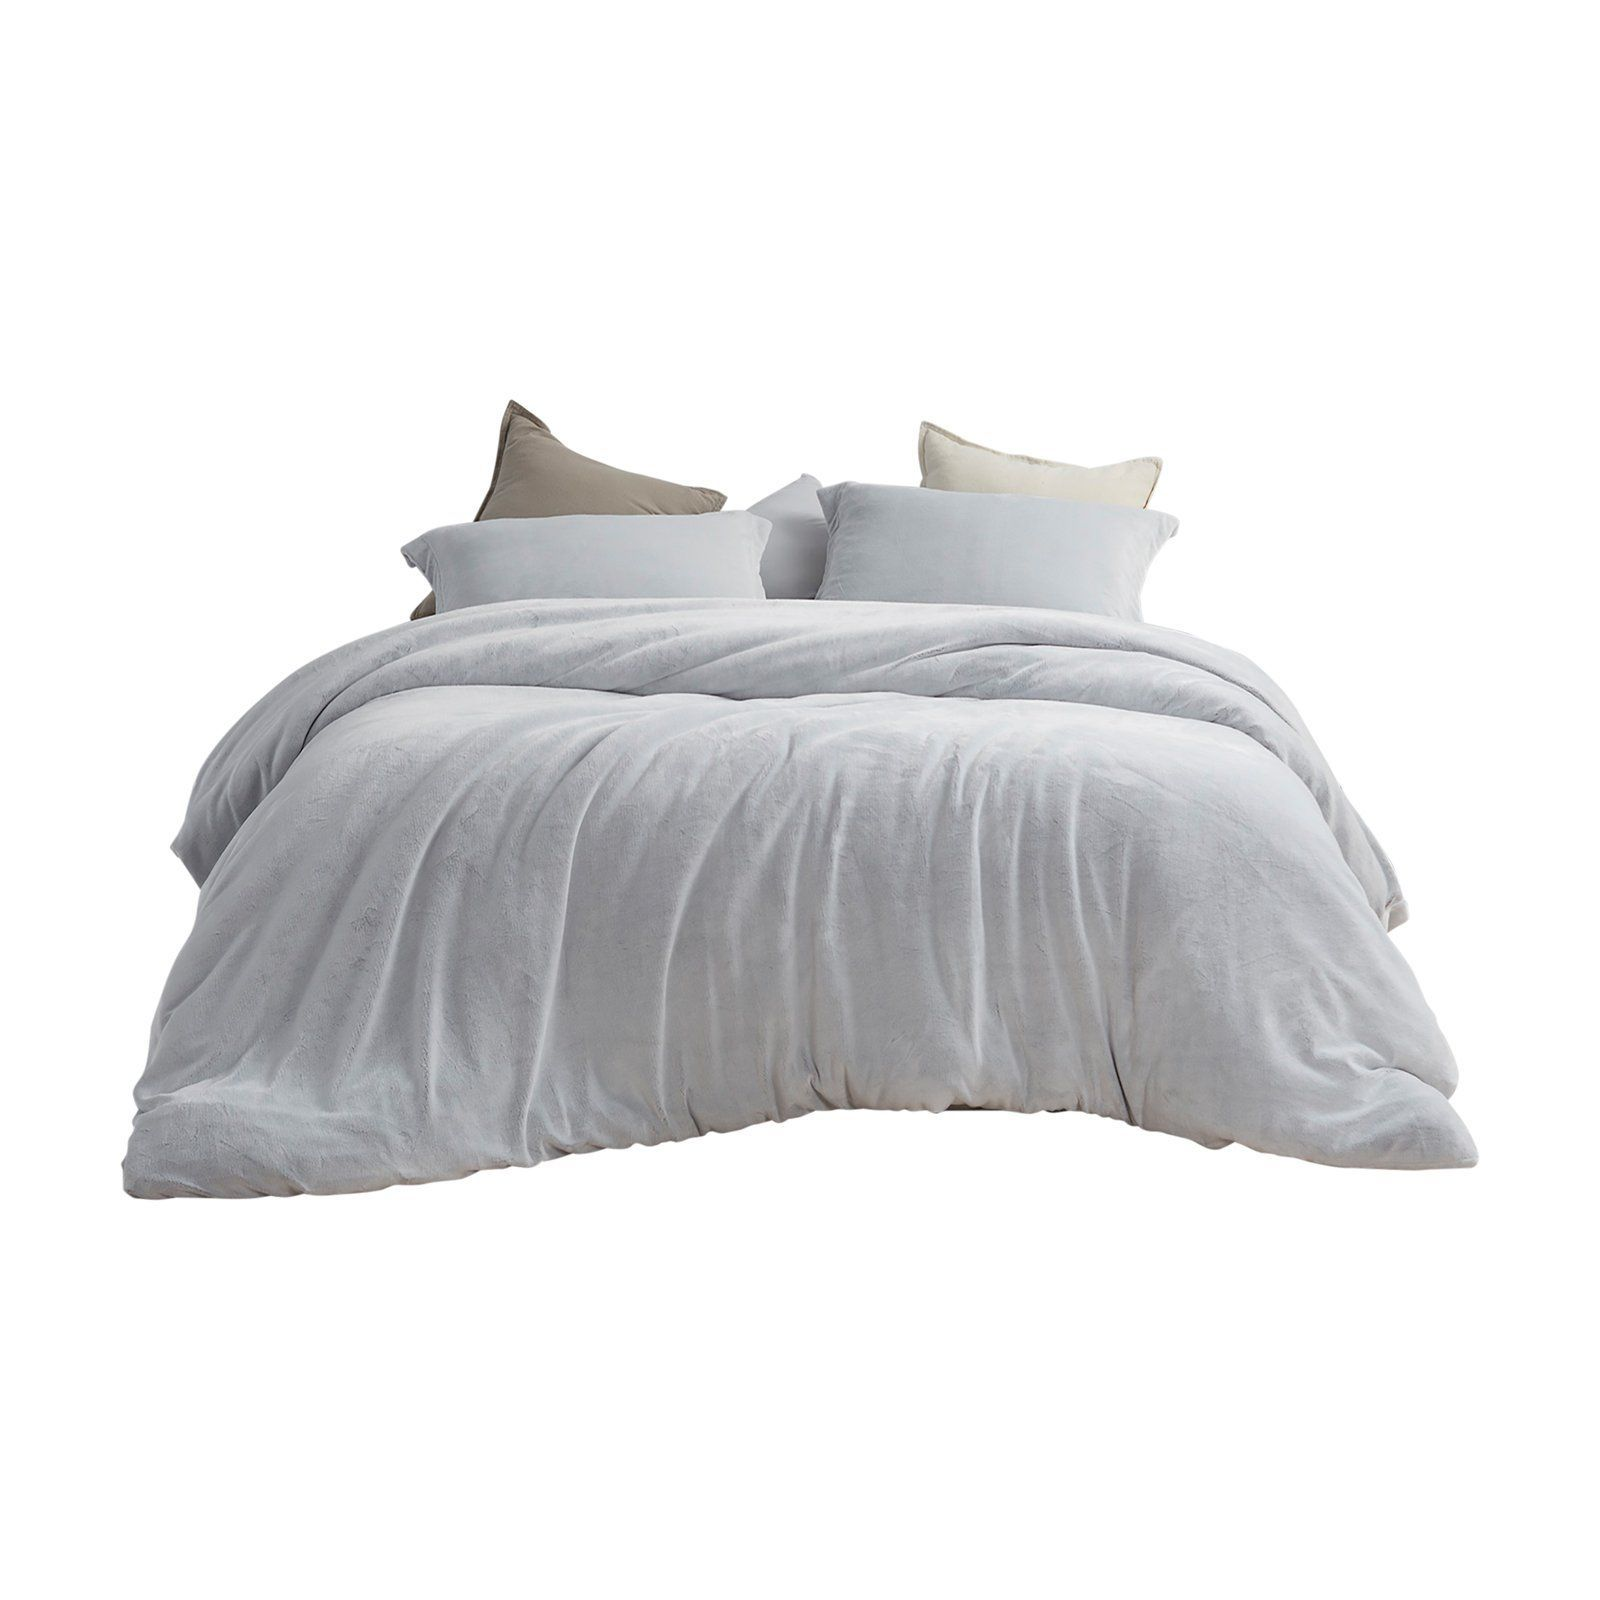 Coma Inducer Frosted Duvet Cover By Byourbed Granite Gray